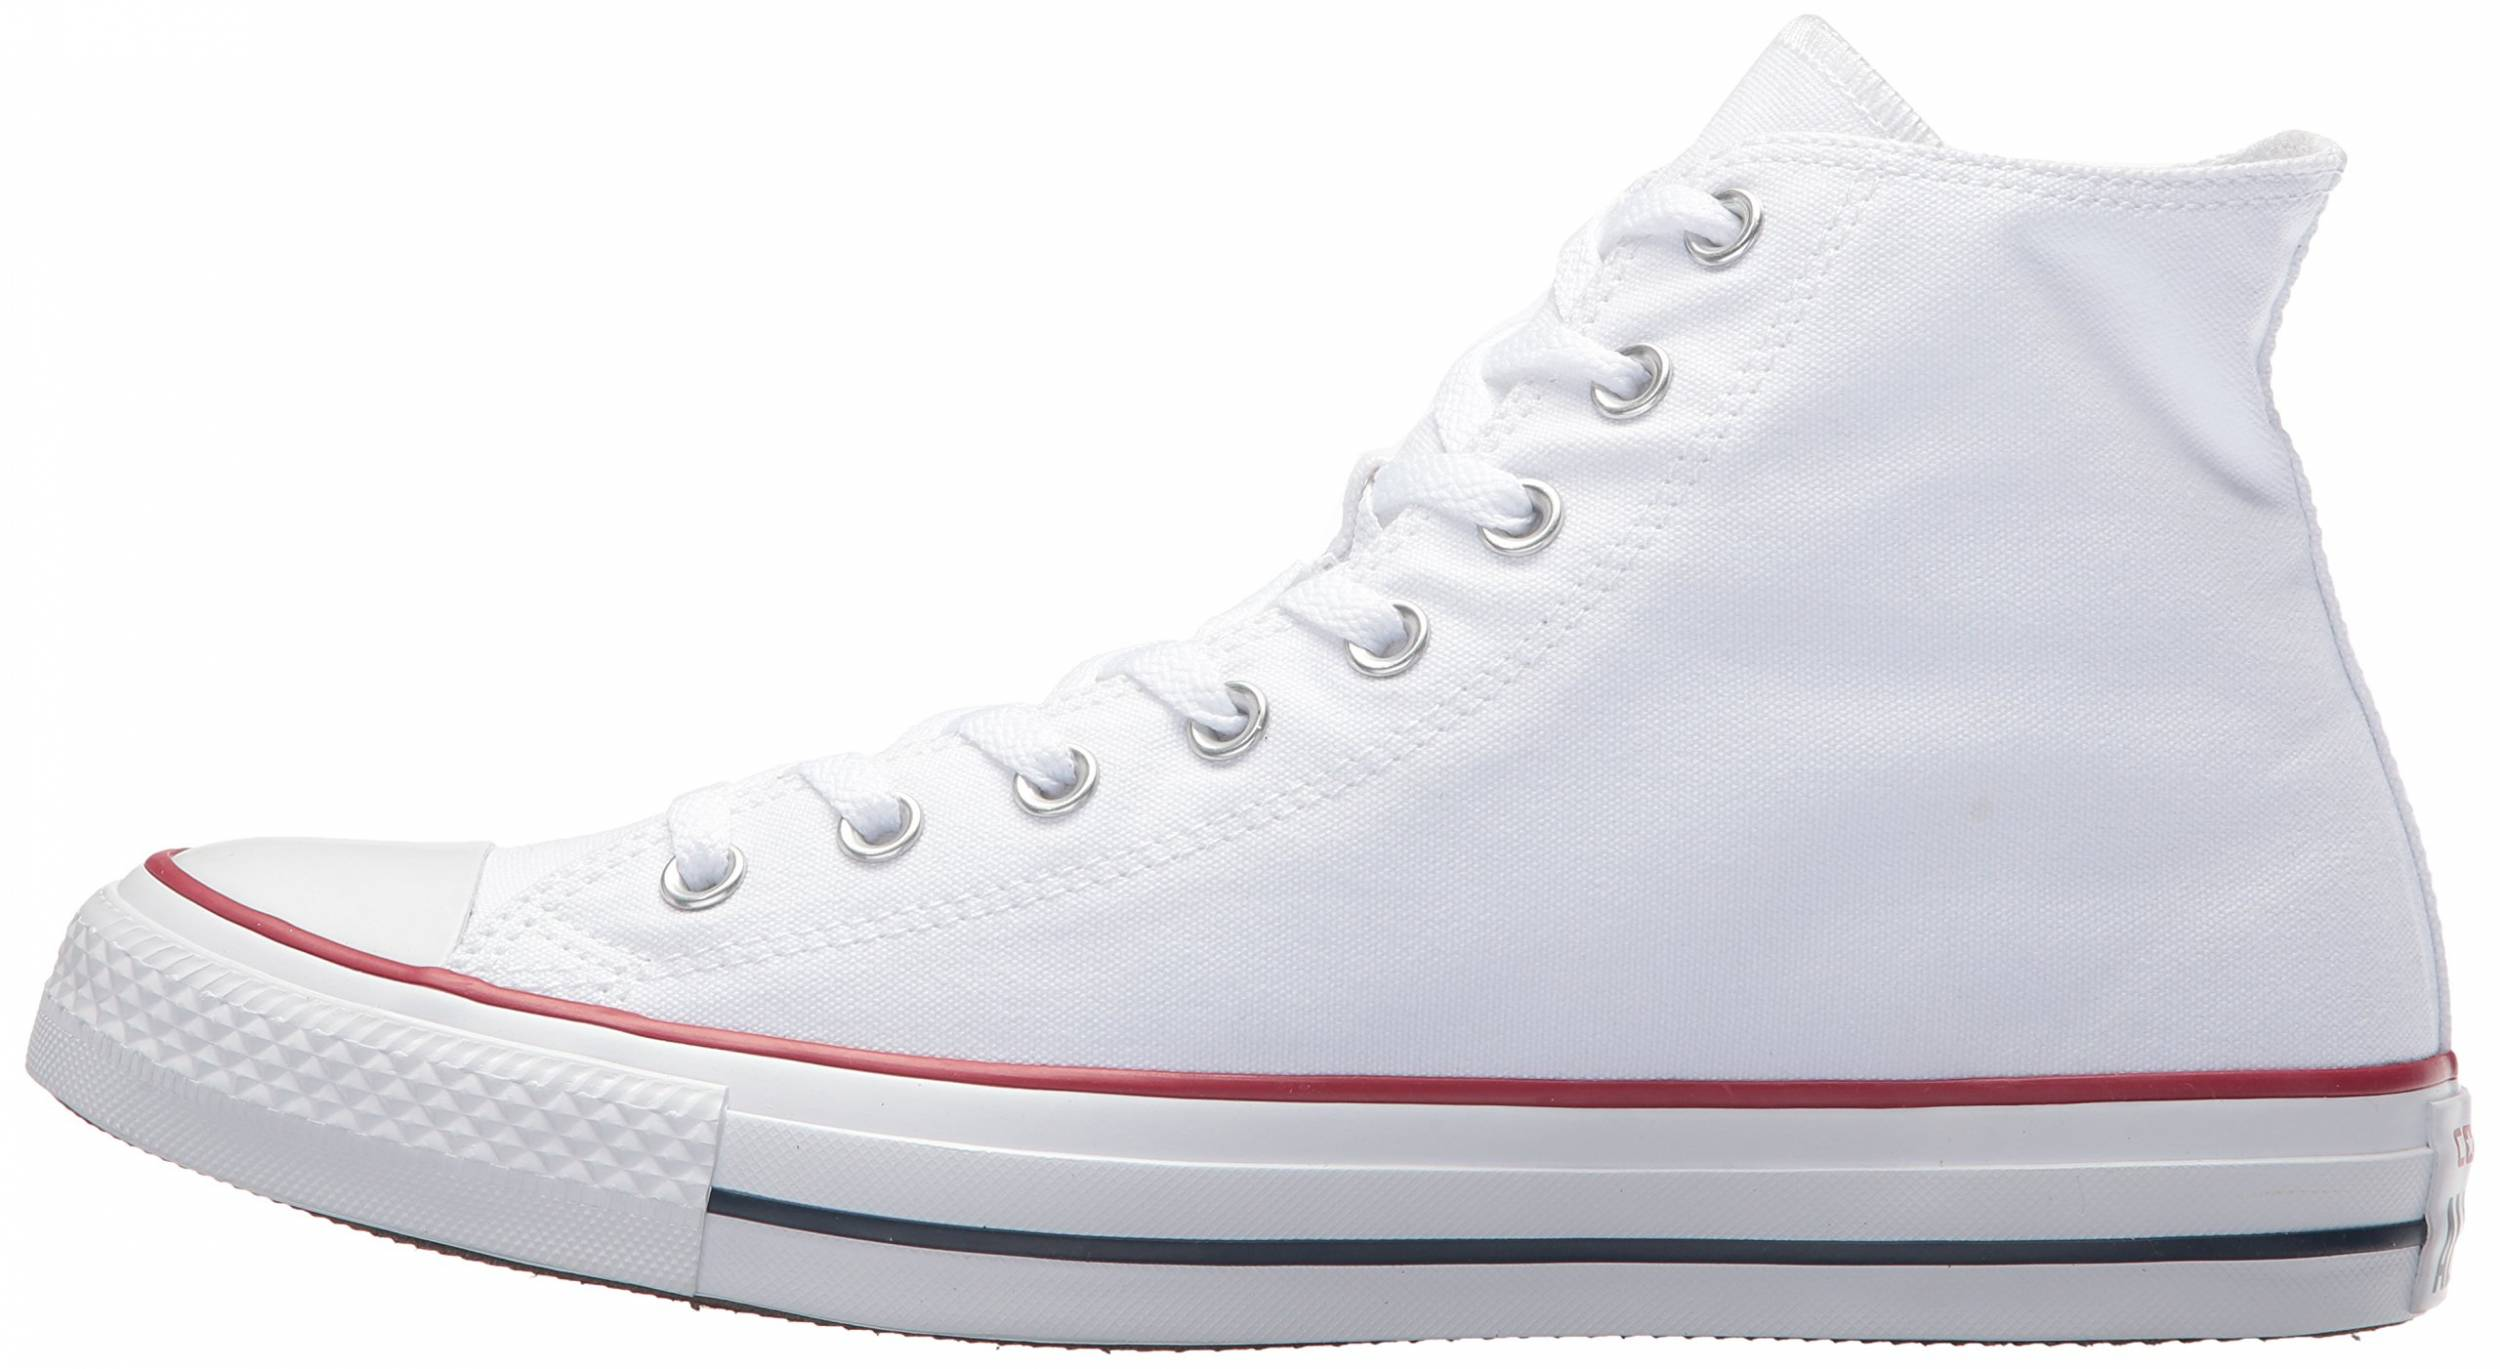 converse all star chuck taylor high top sneakers